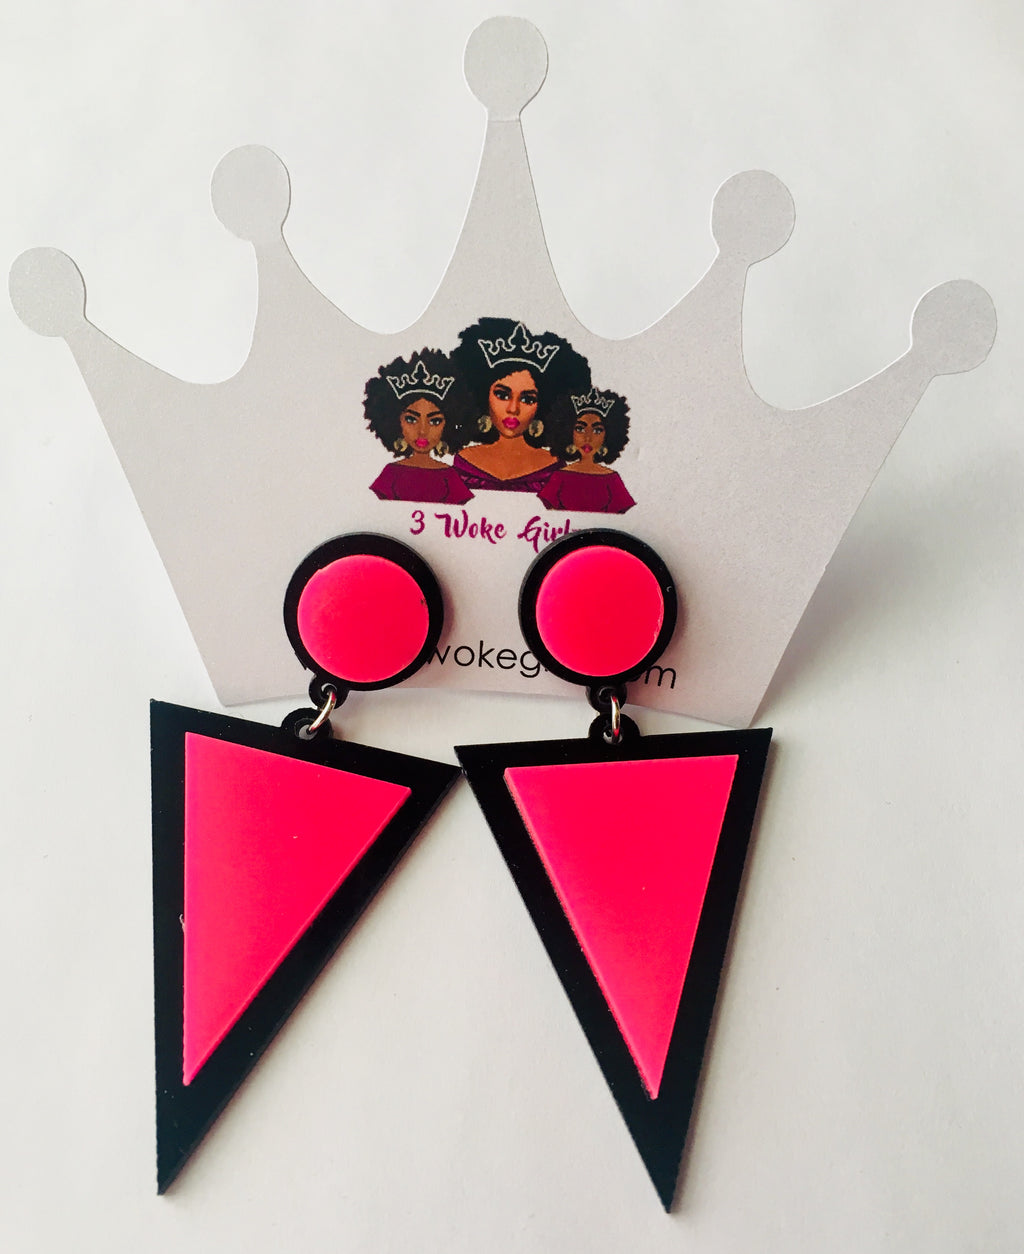 Hot Pink Pop Triangle Earrings - 3 Woke Girlz